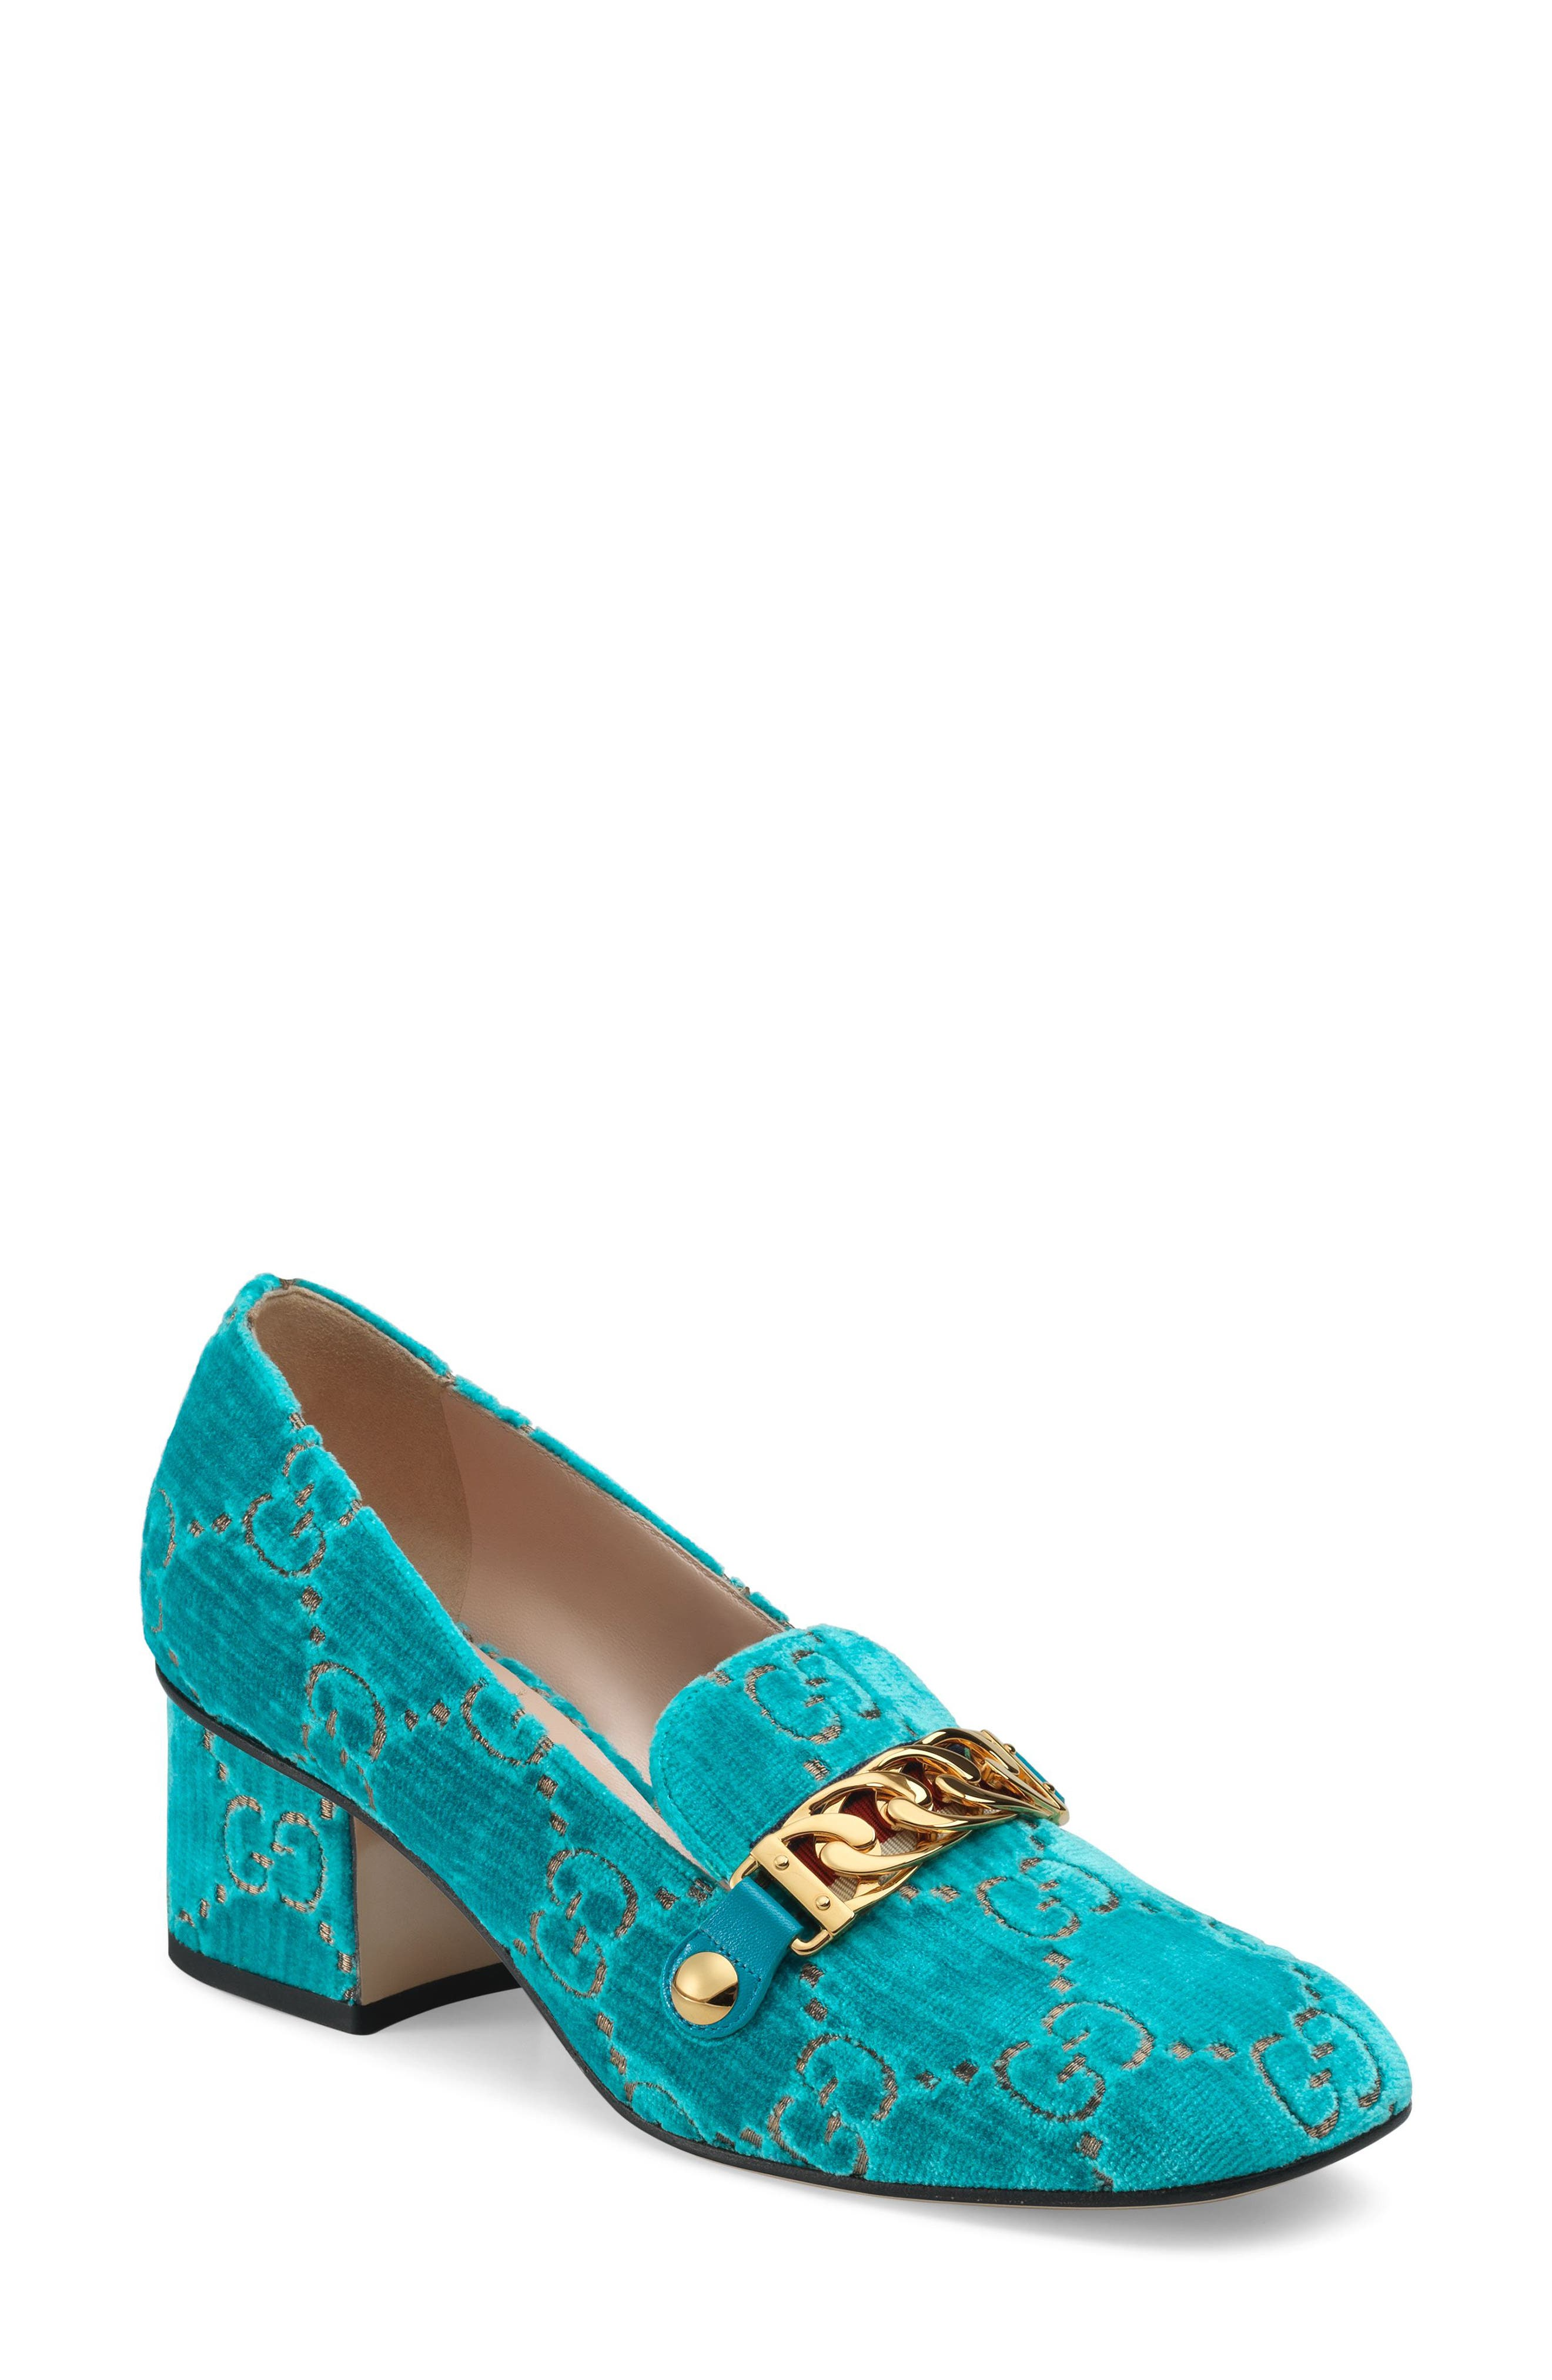 GUCCI,                             Sylvie Loafer Pump,                             Main thumbnail 1, color,                             TURQUOISE